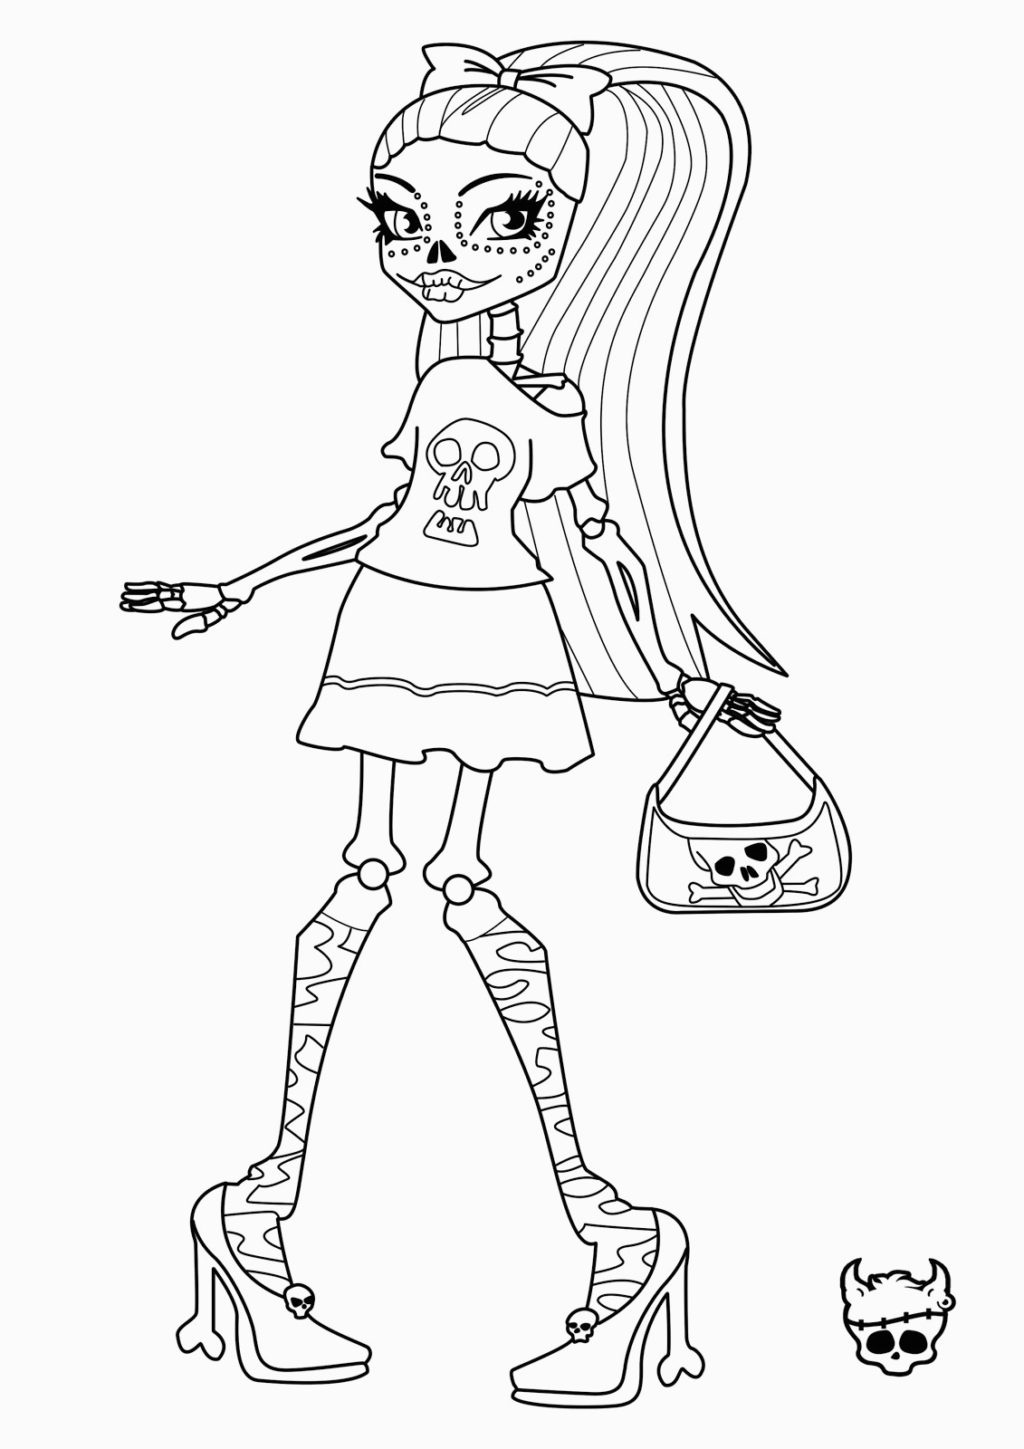 Coloring Book World ~ Splendi Monster High Coloring Pages Image - Monster High Free Printable Pictures